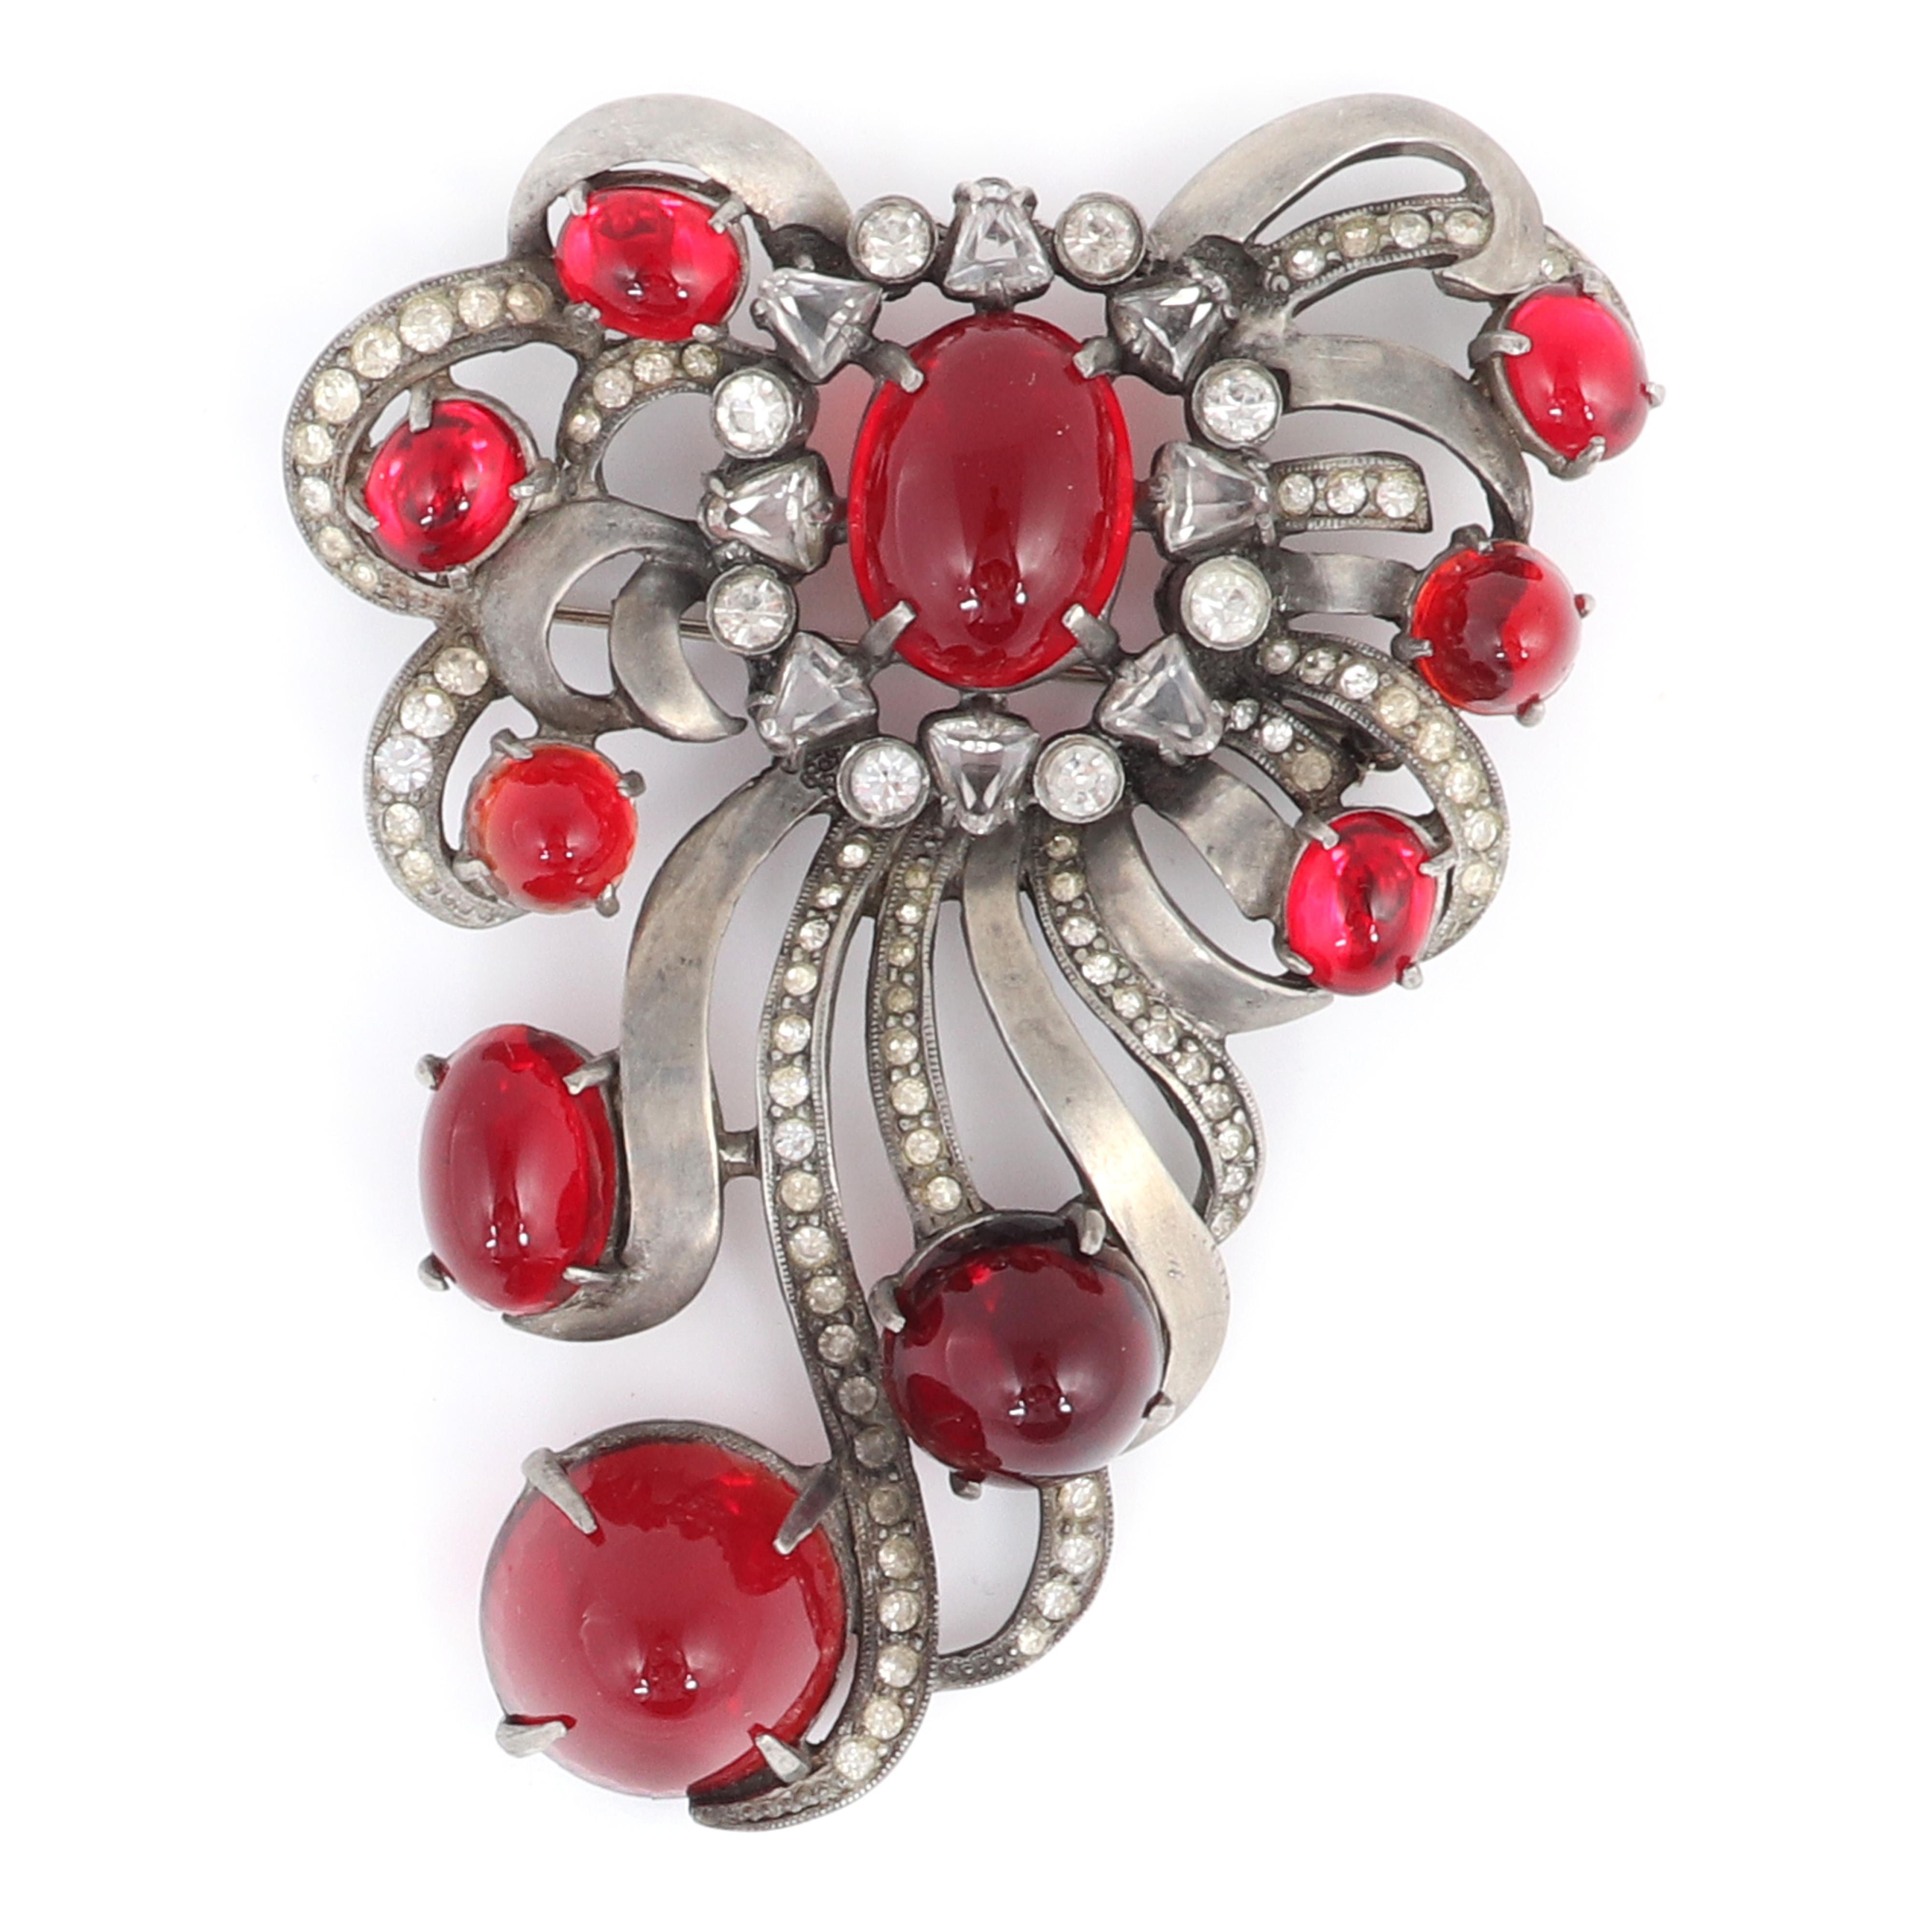 "Eisenberg Original large ruby glass cabochon brooch with silver pot metal ribbons lined with small rhinestones, bezel-set and triangular stones, late-1930s. 4"" x 3"""